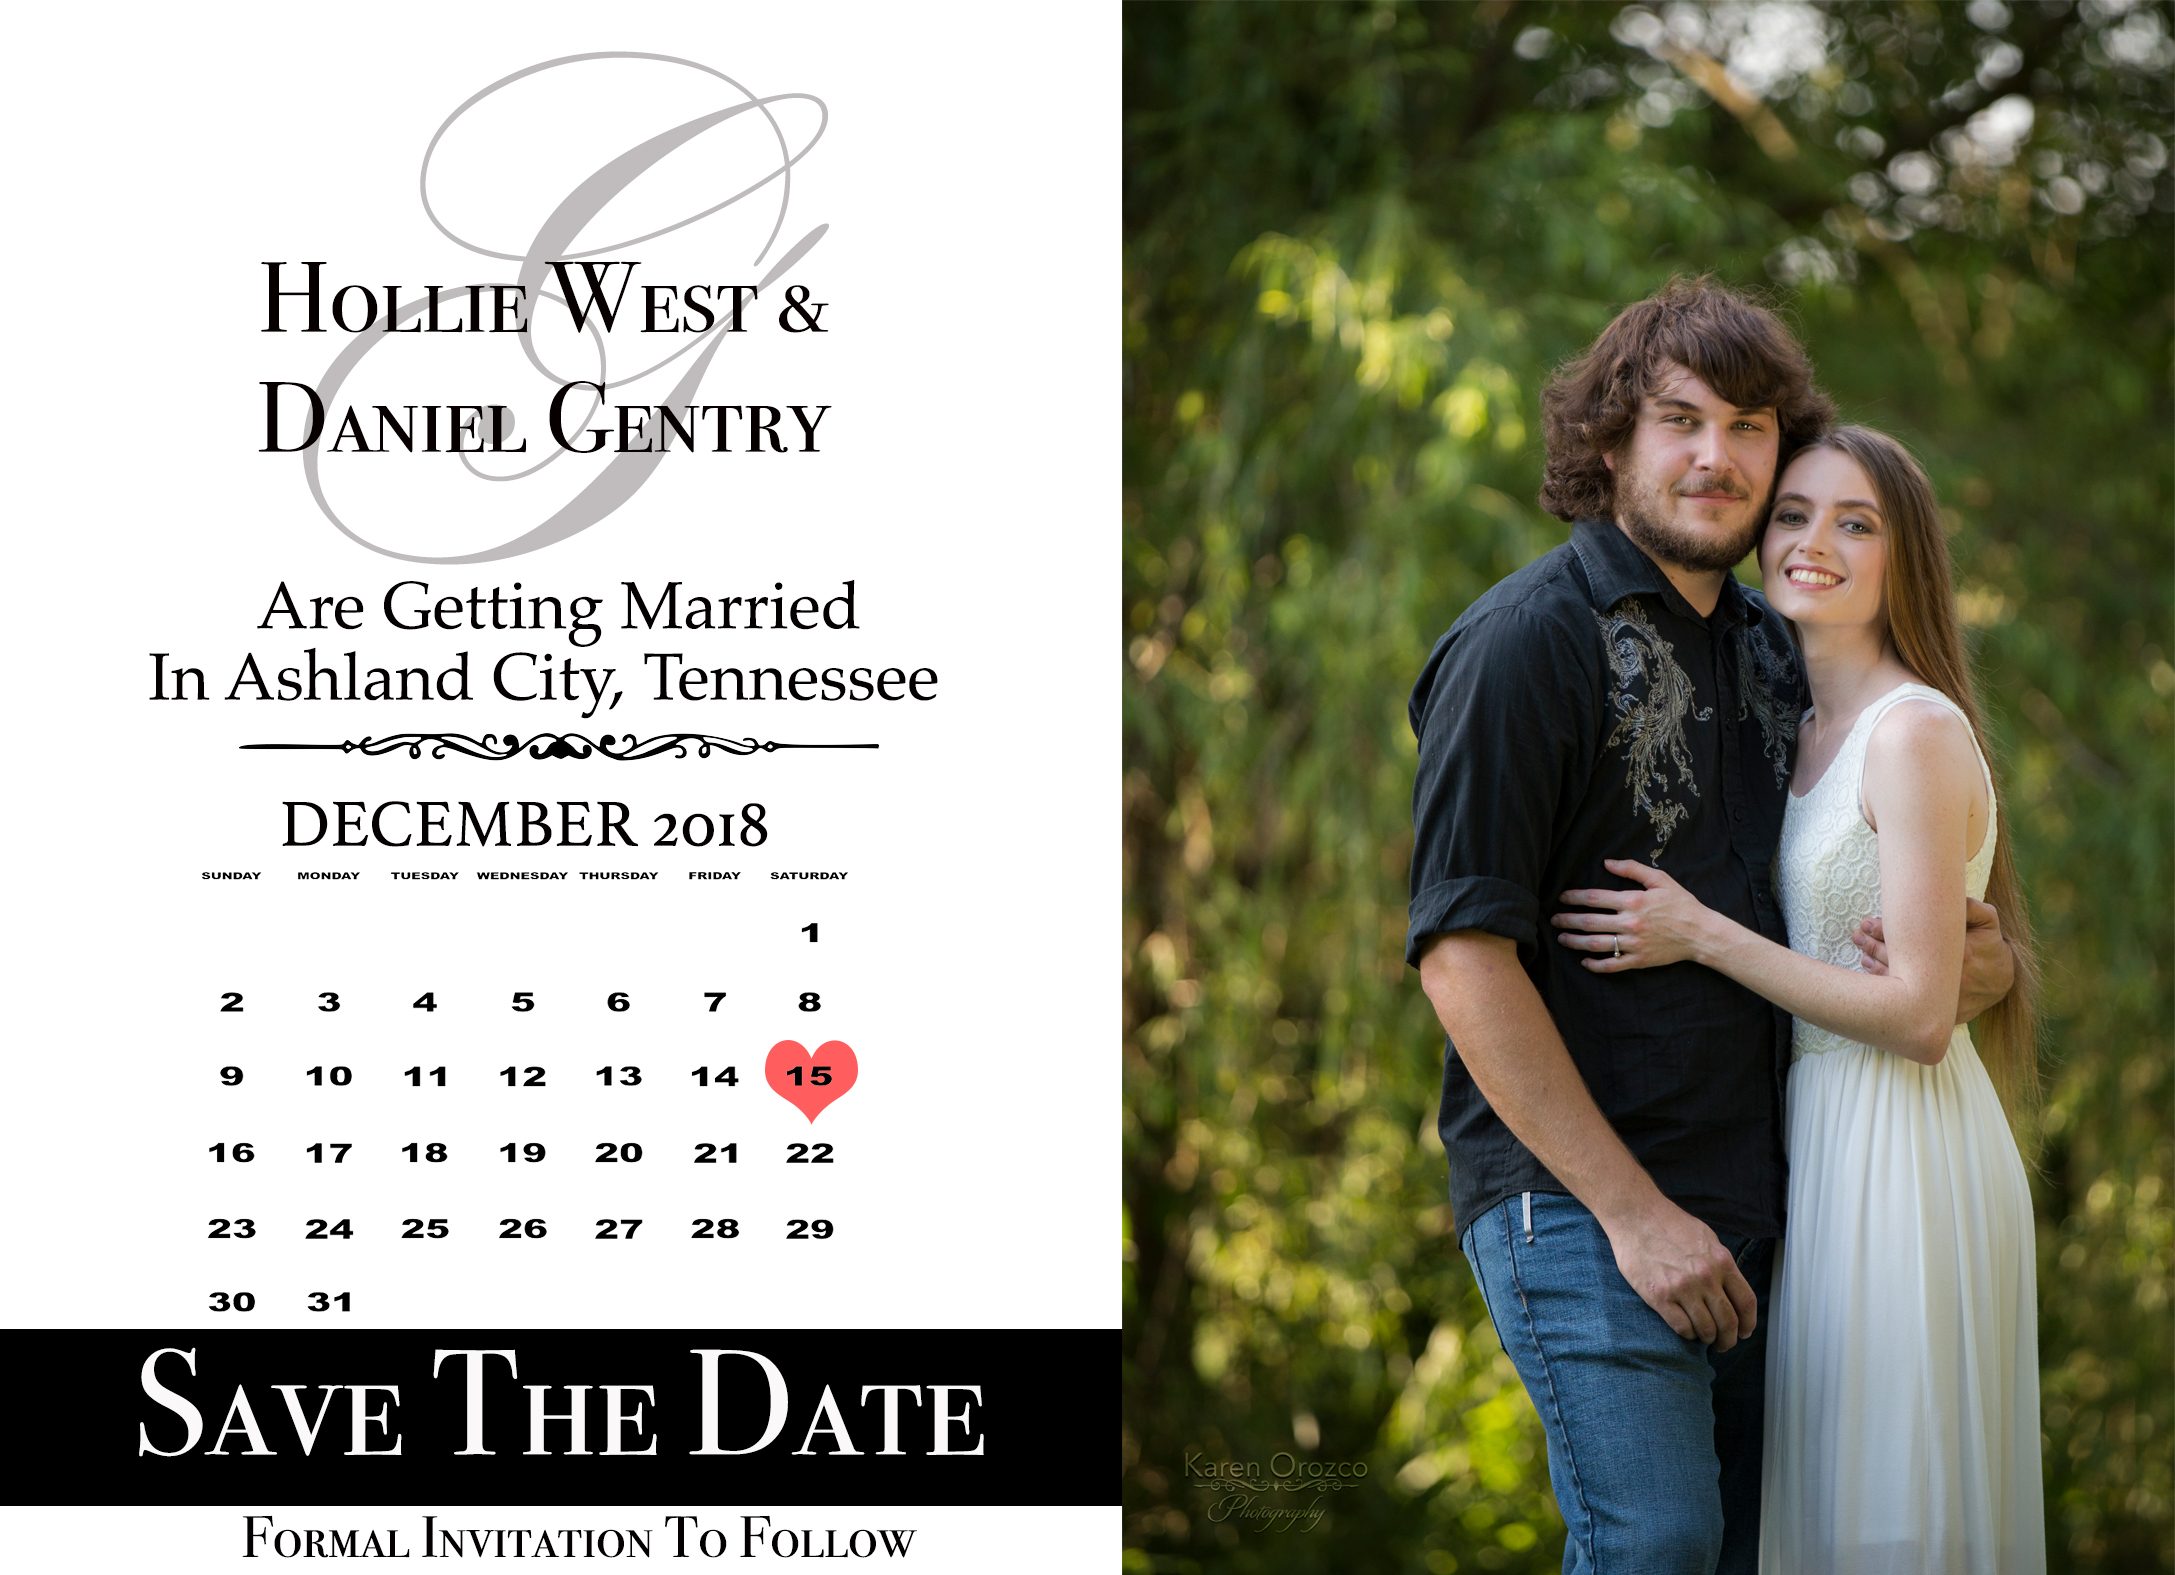 Save The Date (front)